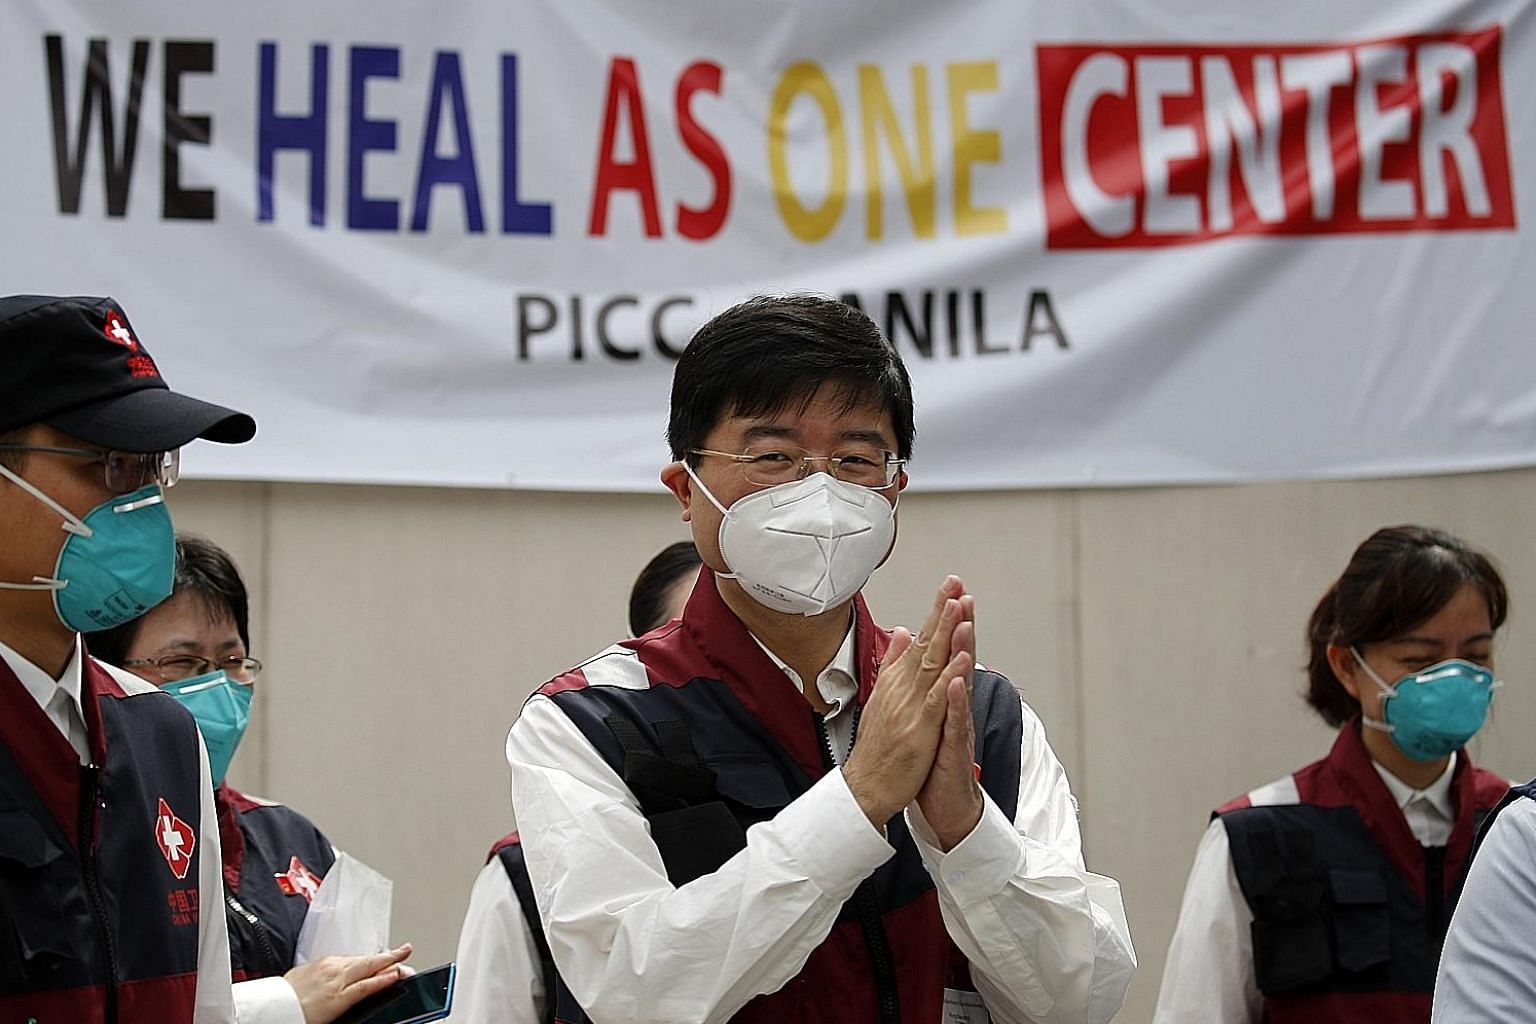 Chinese doctors at a Covid-19 isolation facility in Manila, Philippines, earlier this month. A Chinese music video extolling cooperation between Manila and Beijing amid the pandemic has touched a raw nerve instead.